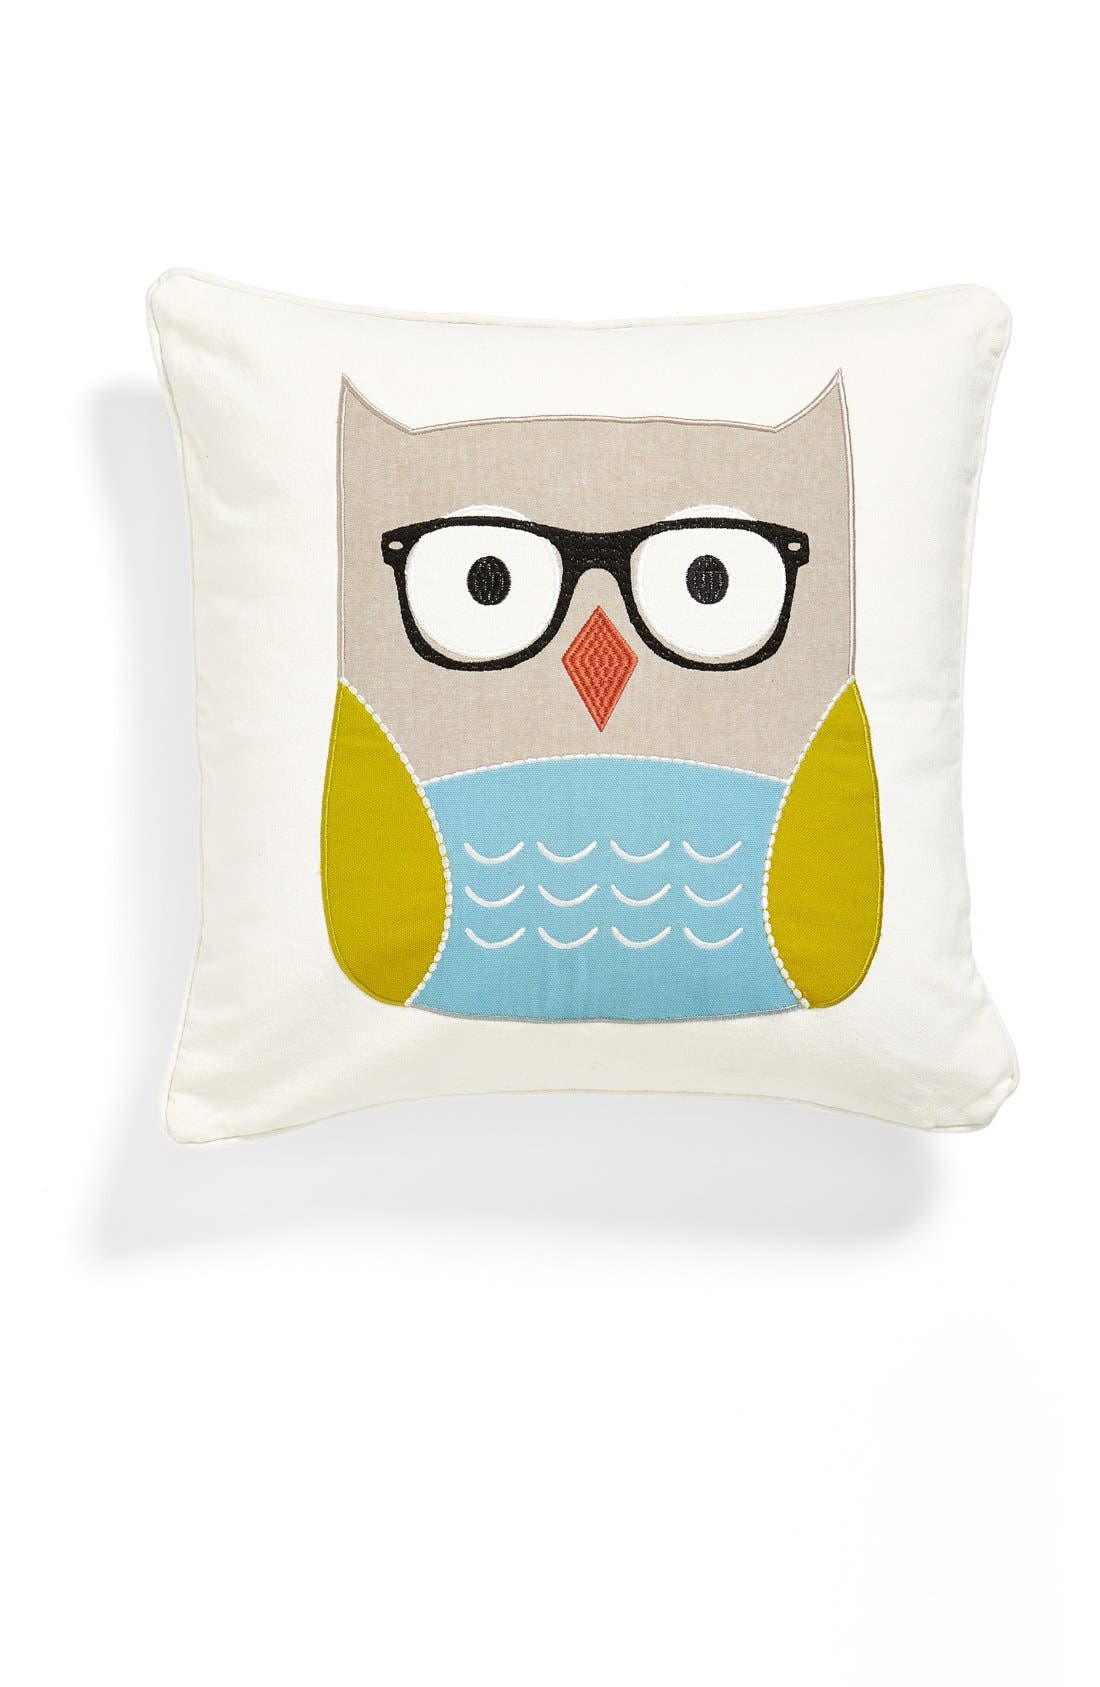 'Owl with Glasses' Accent Pillow,                             Main thumbnail 1, color,                             Blue/Green Multi